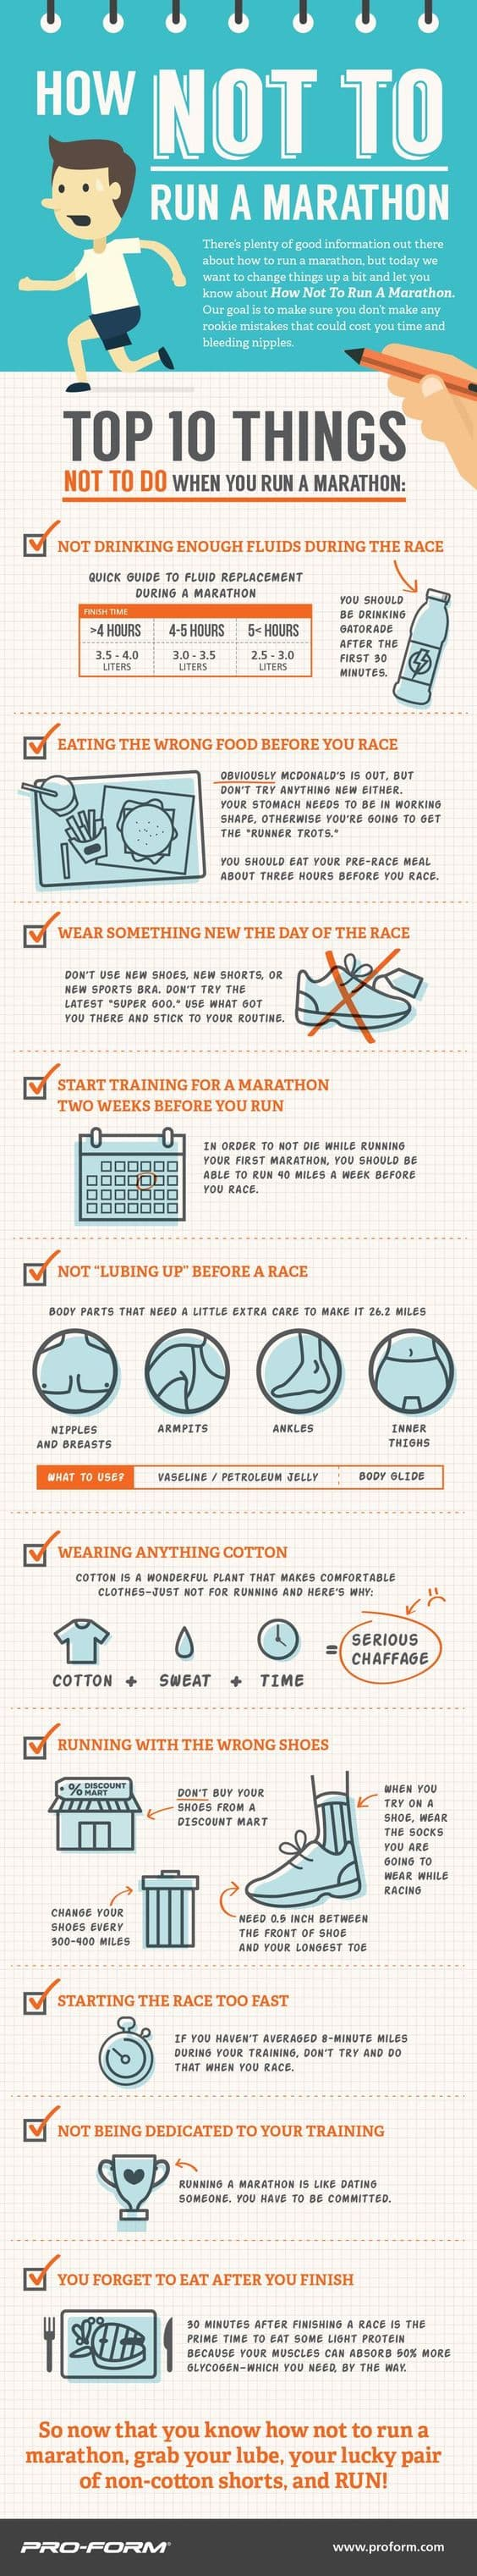 Top 10 List: How NOT to Run The Walt Disney World Marathon